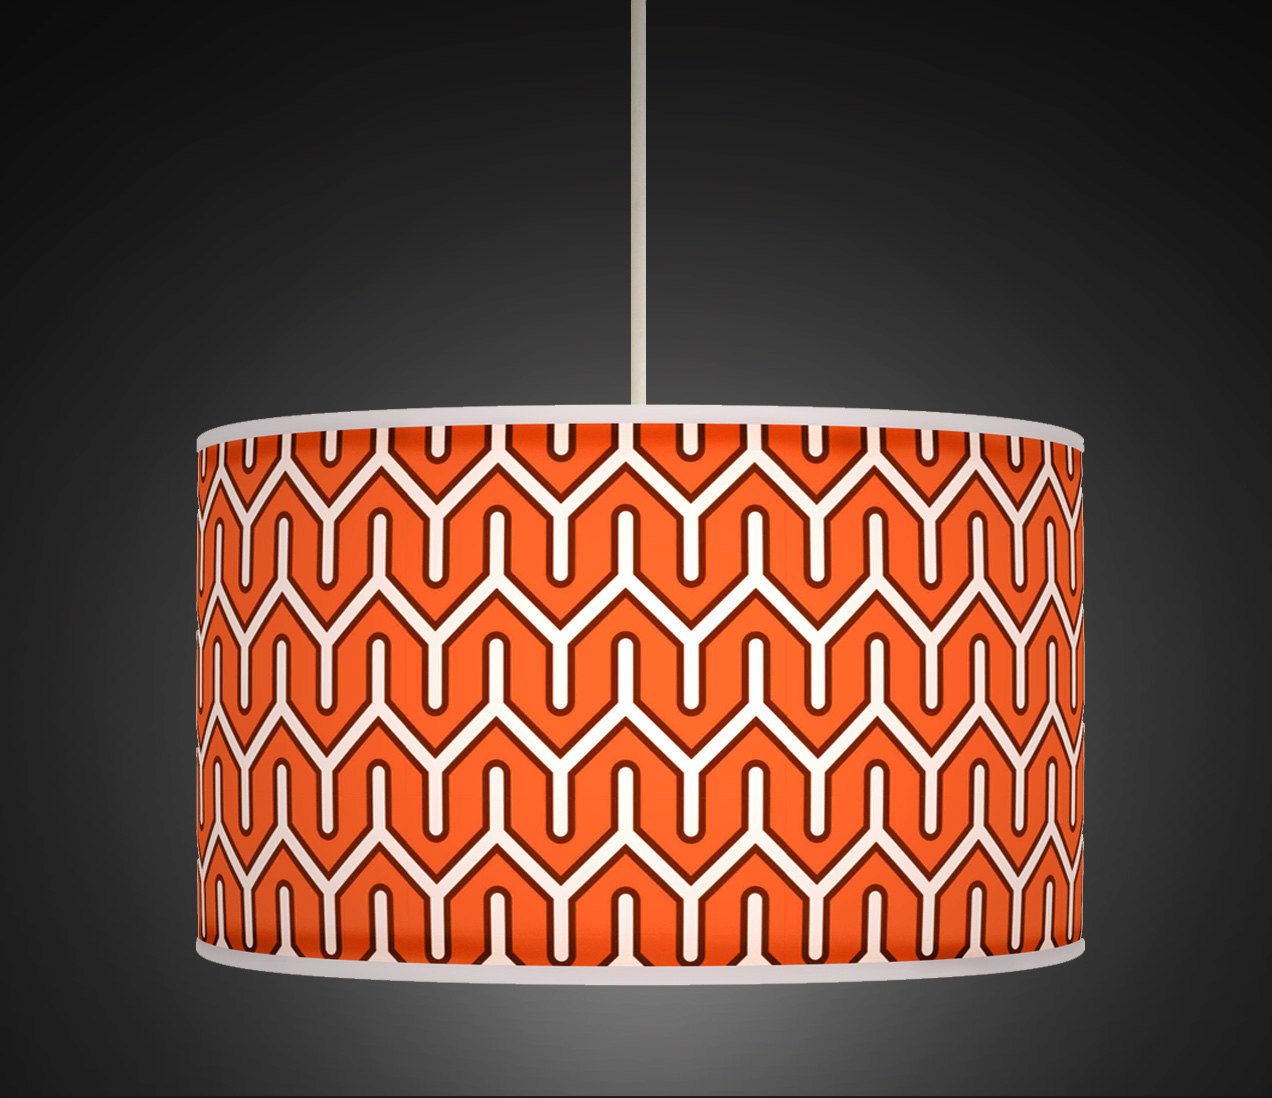 50cm 20 burnt orange white retro geometric handmade printed 50cm 20 burnt orange white retro geometric handmade printed fabric lamp drum lampshade large lampshade floor or ceiling pendant light shade 535 aloadofball Choice Image